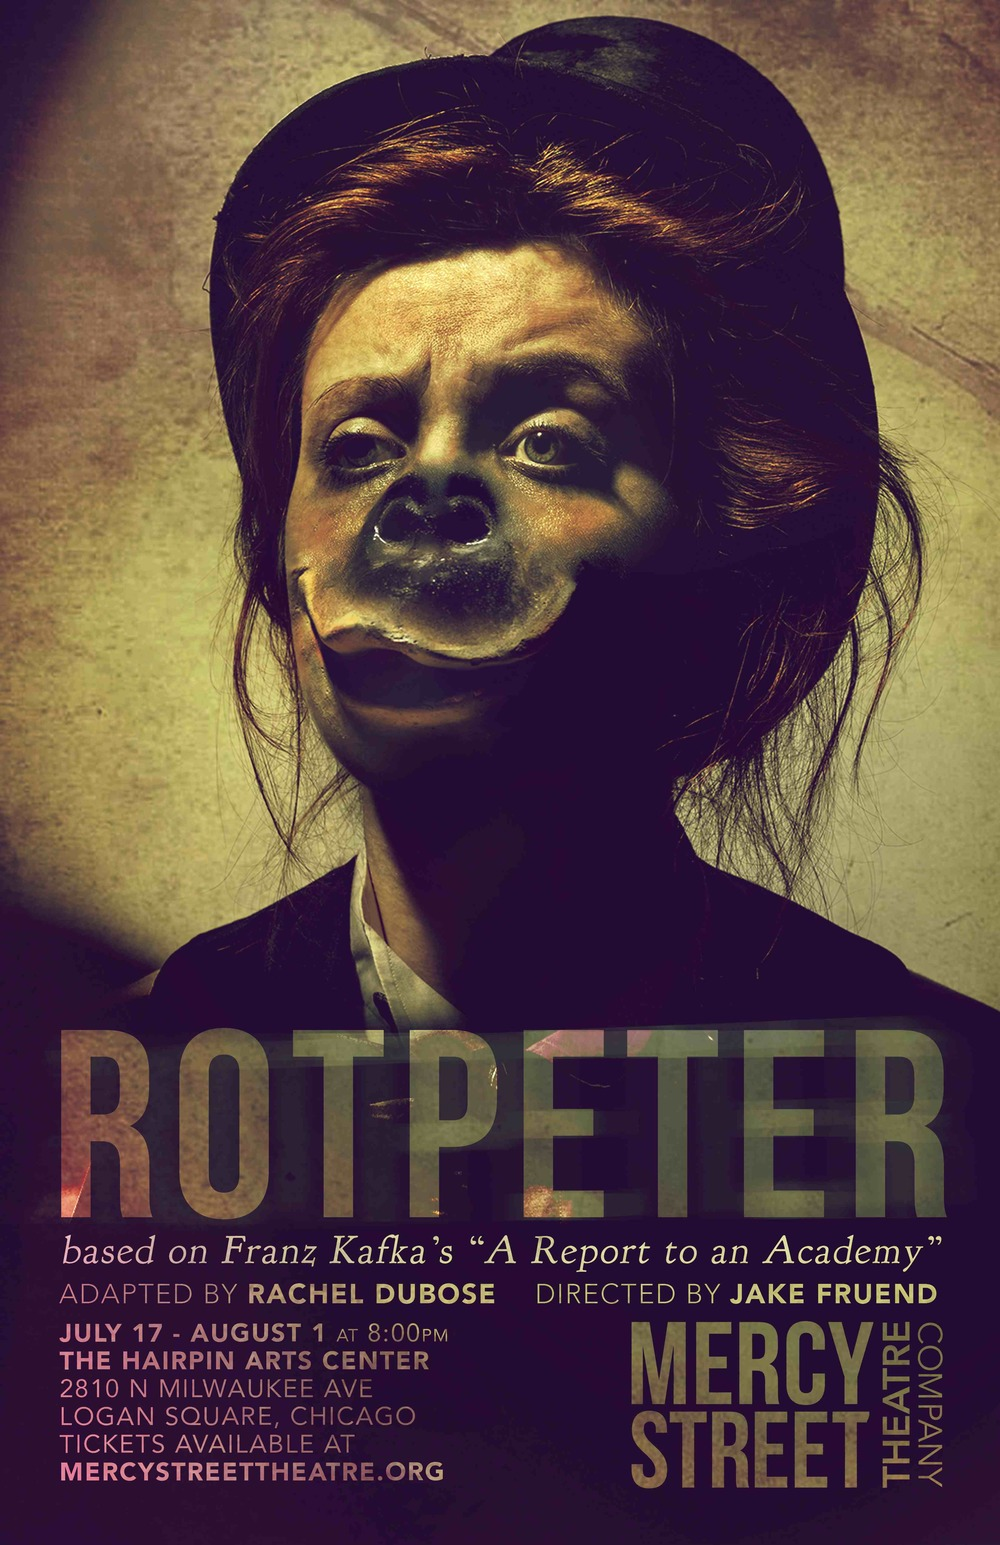 ROTPETER based on A Report to an Academy by Franz Kafka directed by Associate Artistic Director Jake L. Fruend adapted by Resident Playwright Rachel DuBose devised by the ensemble